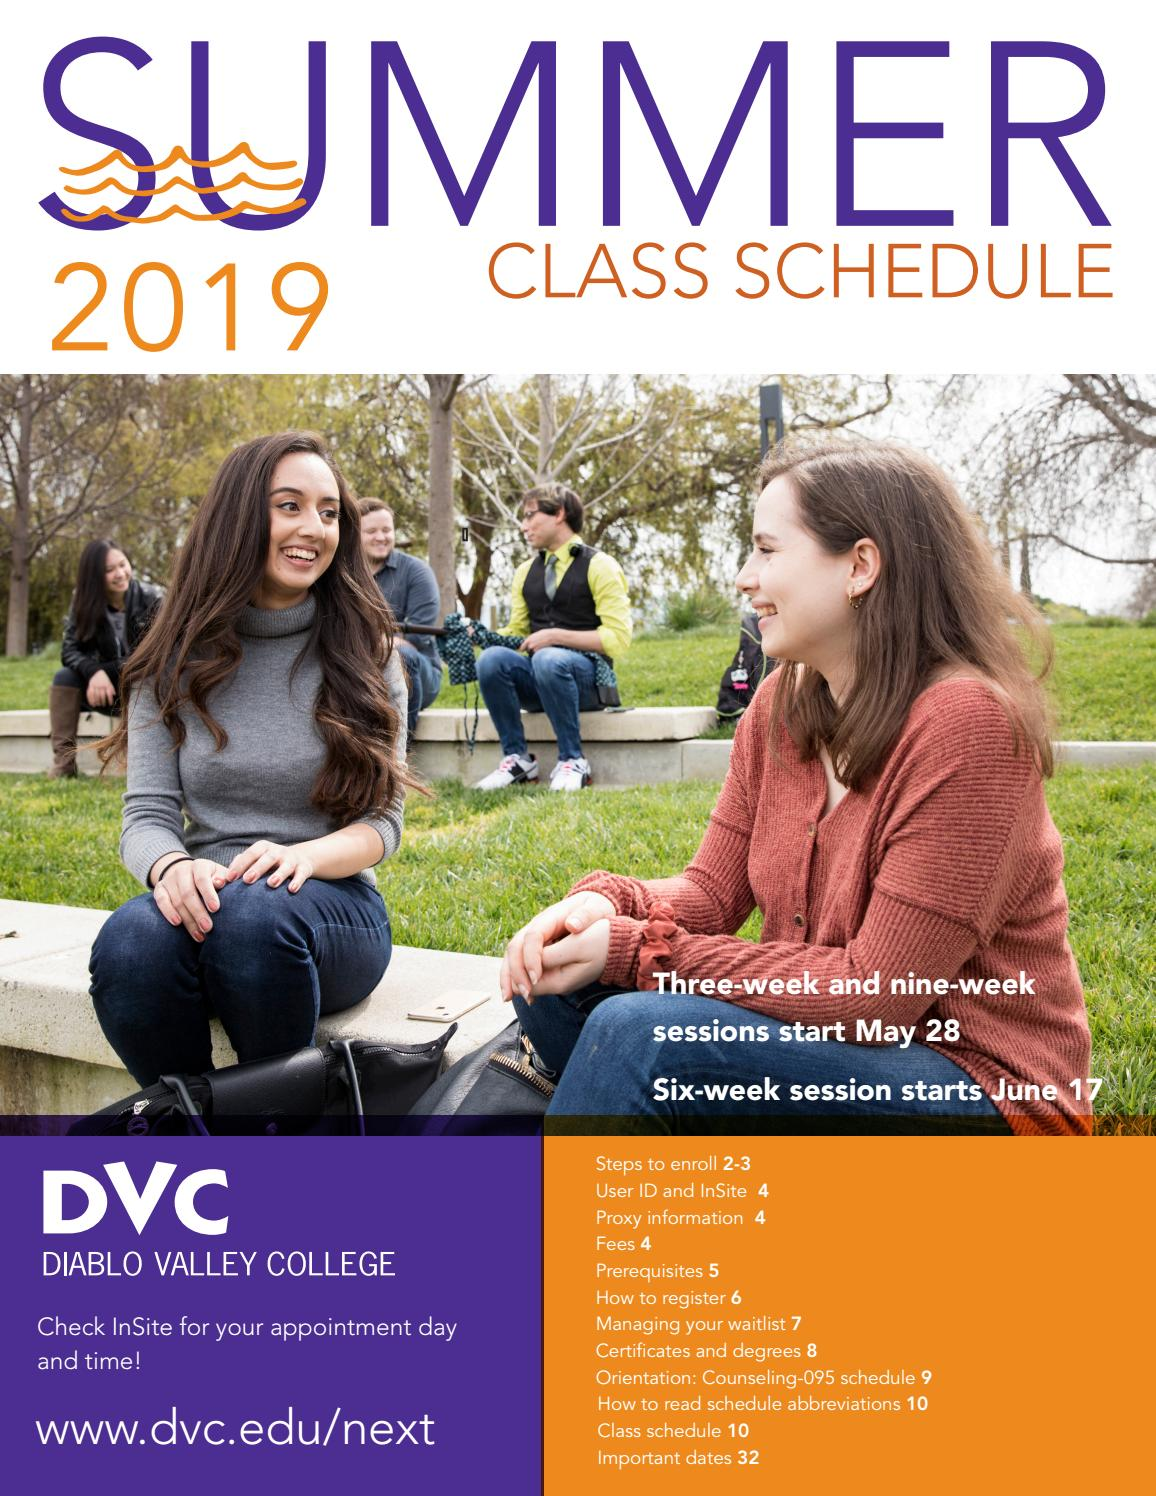 Dvc Summer 2020 Classes.Dvc Summer 2019 Class Schedule By Diablo Valley College Issuu